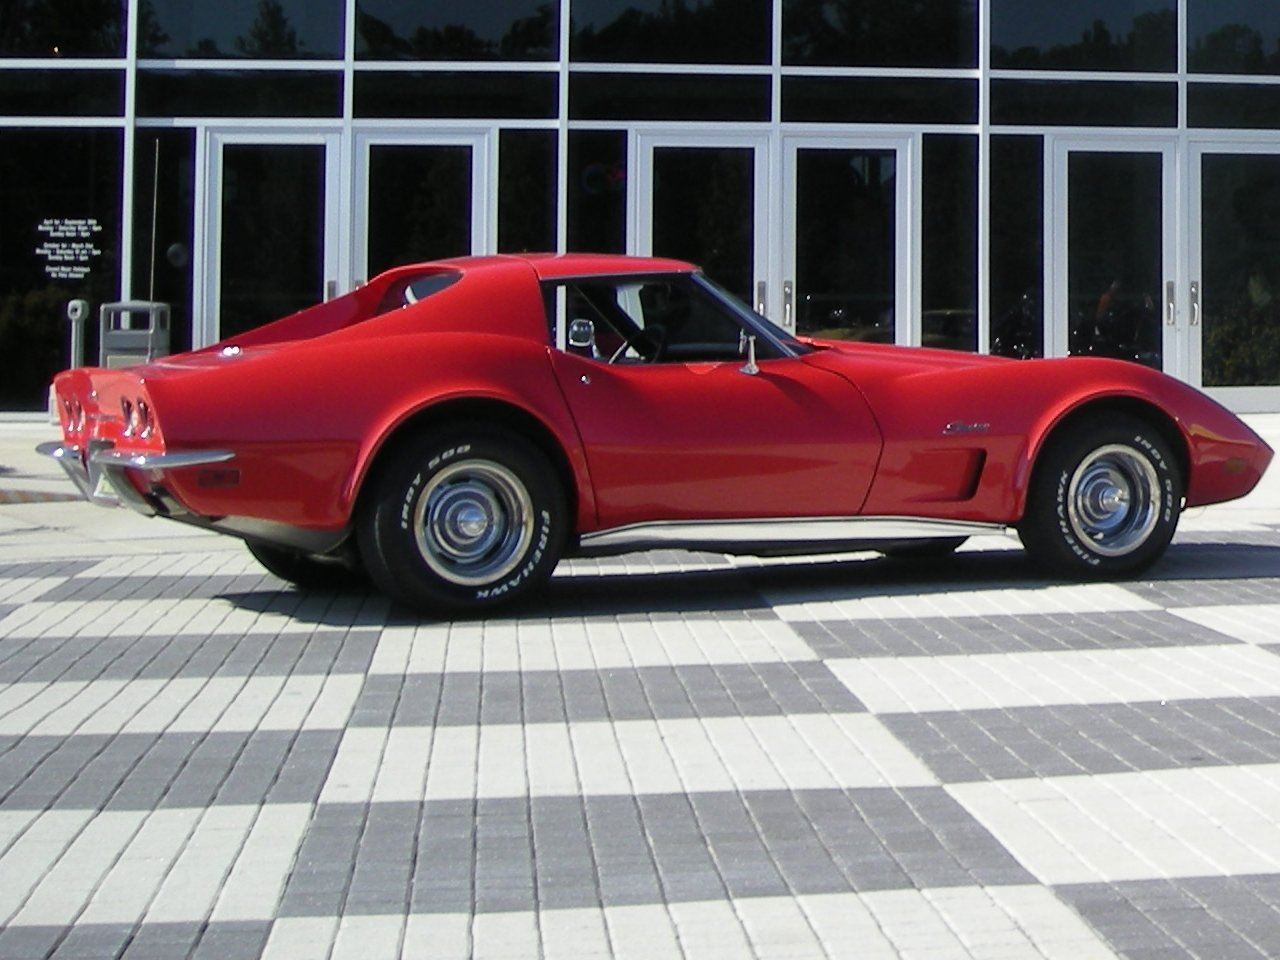 1973 Chevrolet Corvette Coupe picture